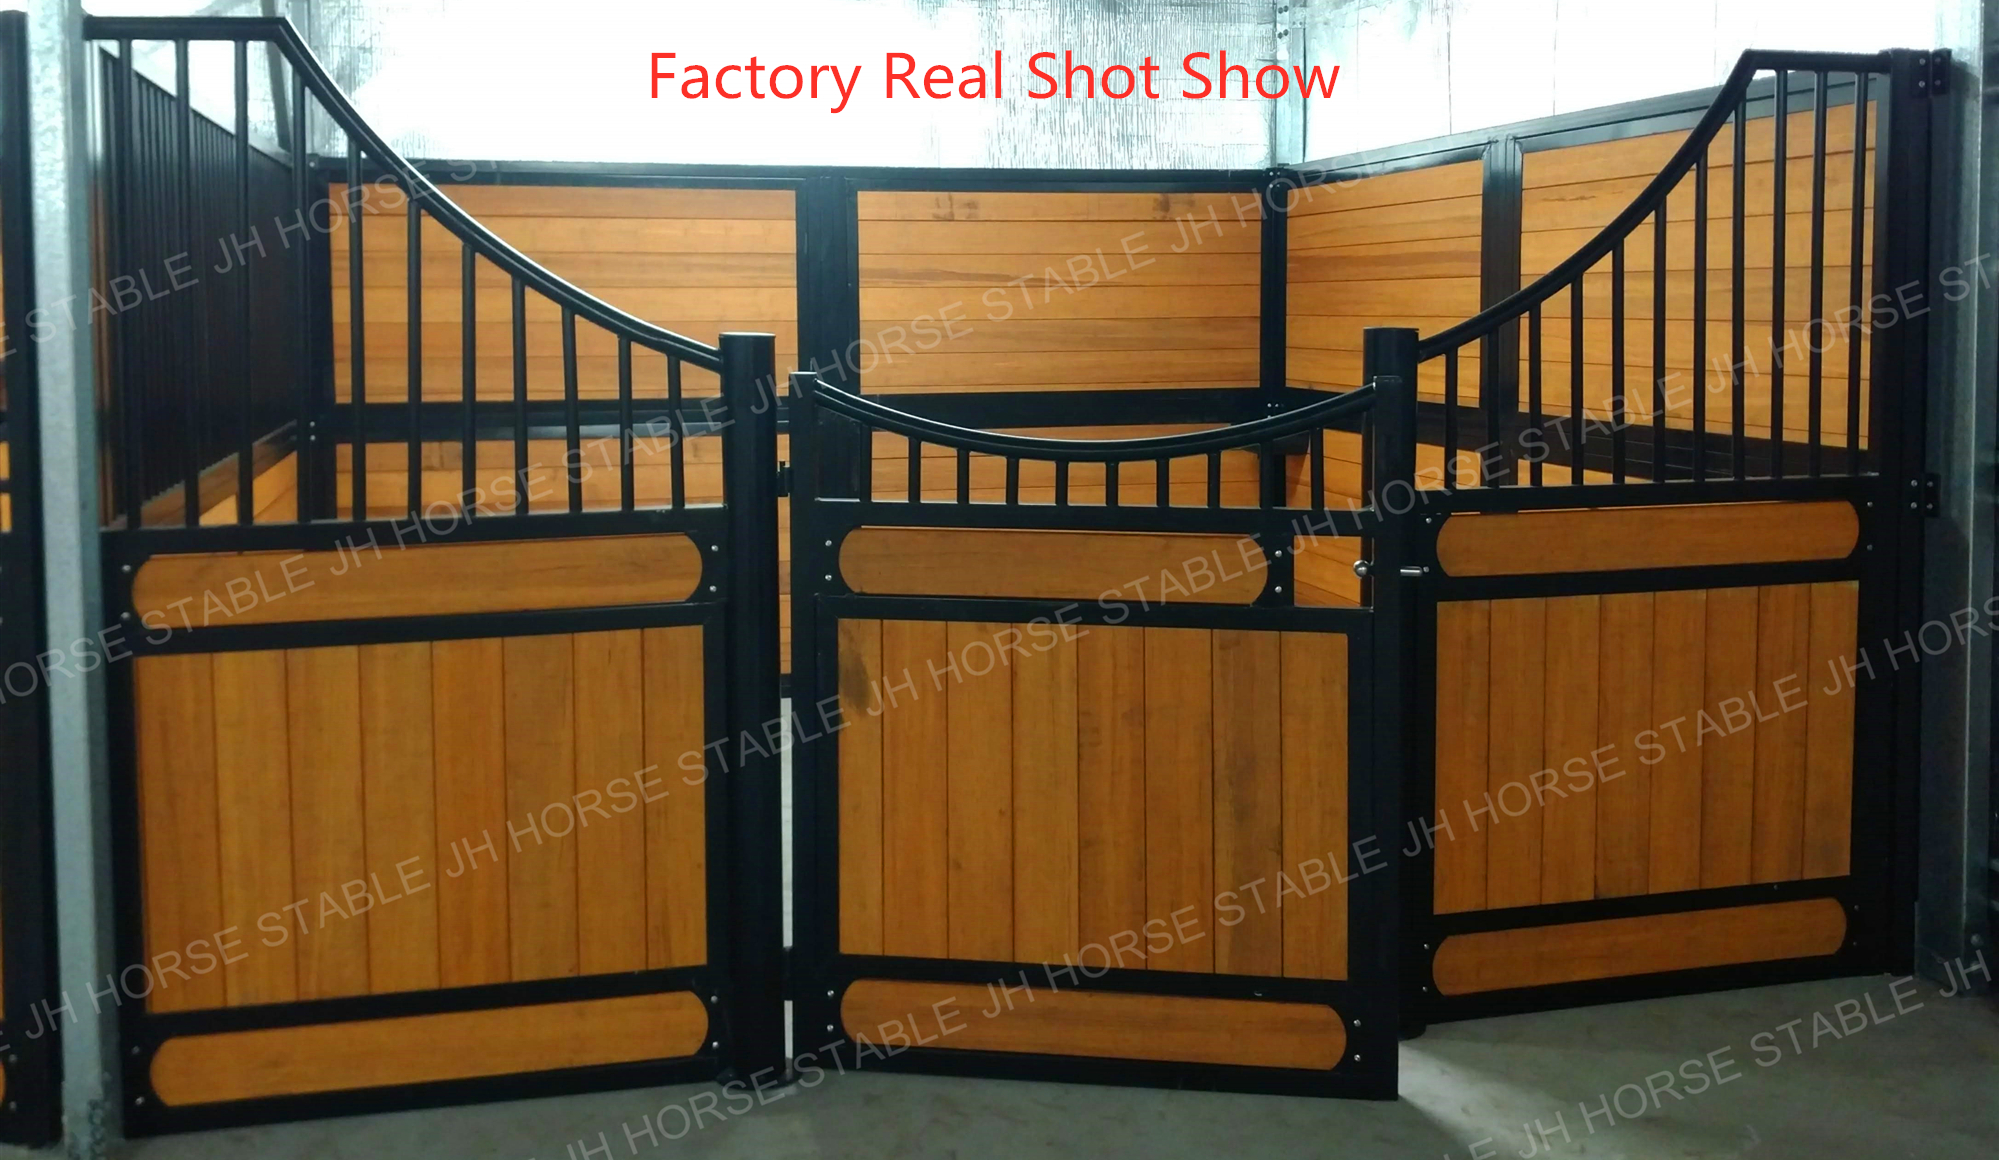 Outdoor Portable Horse Stall Mobile Stables Ideas Plans Scotland Uk Buy Mobile Stall Portable Horse Stalls Mobile Horse Stables Scotland Uk Outdoor Horse Stall Stables Ideas Plans Product On Alibaba Com